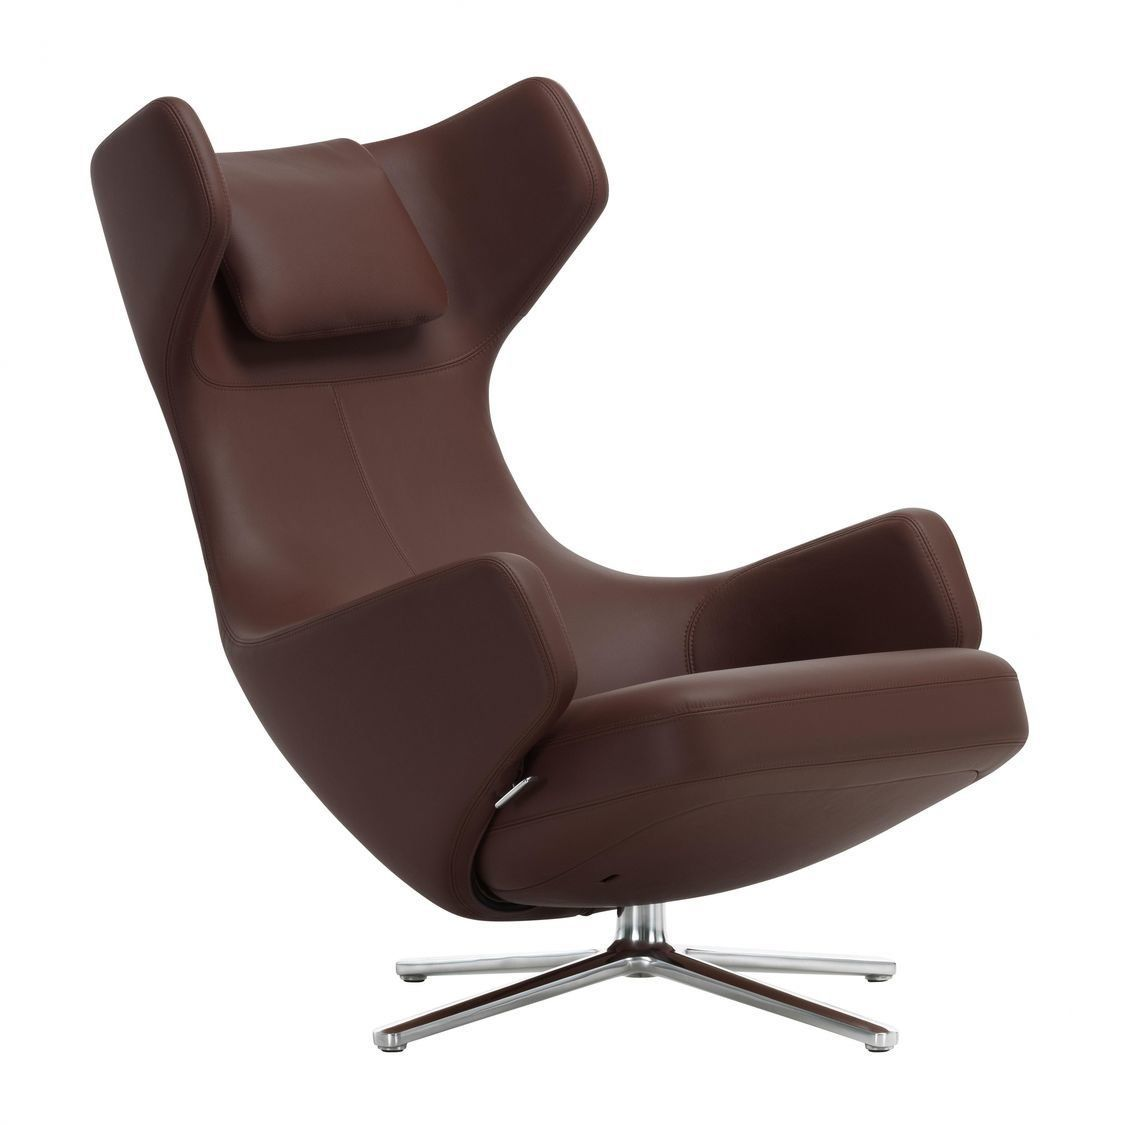 Grand Repos Sessel Grand Repos Sessel Vitra Ambientedirect